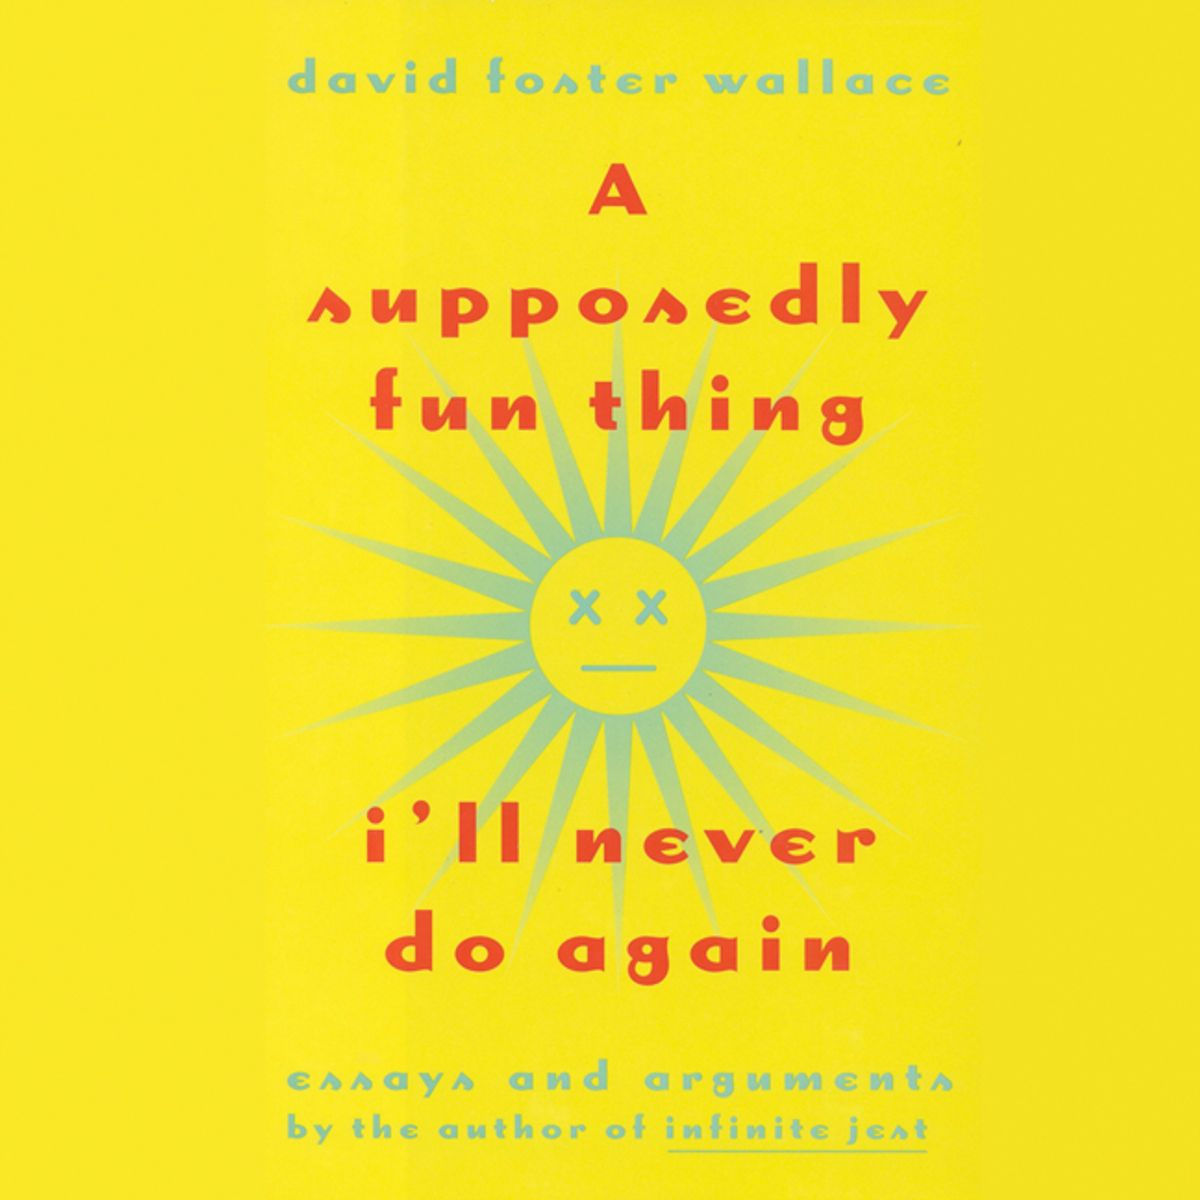 019 David Foster Wallace Essays Essay Example Supposedly Fun Thing I Ll Never Do Again Formidable Amazon And The Long New On Novels Cruise Ship Full